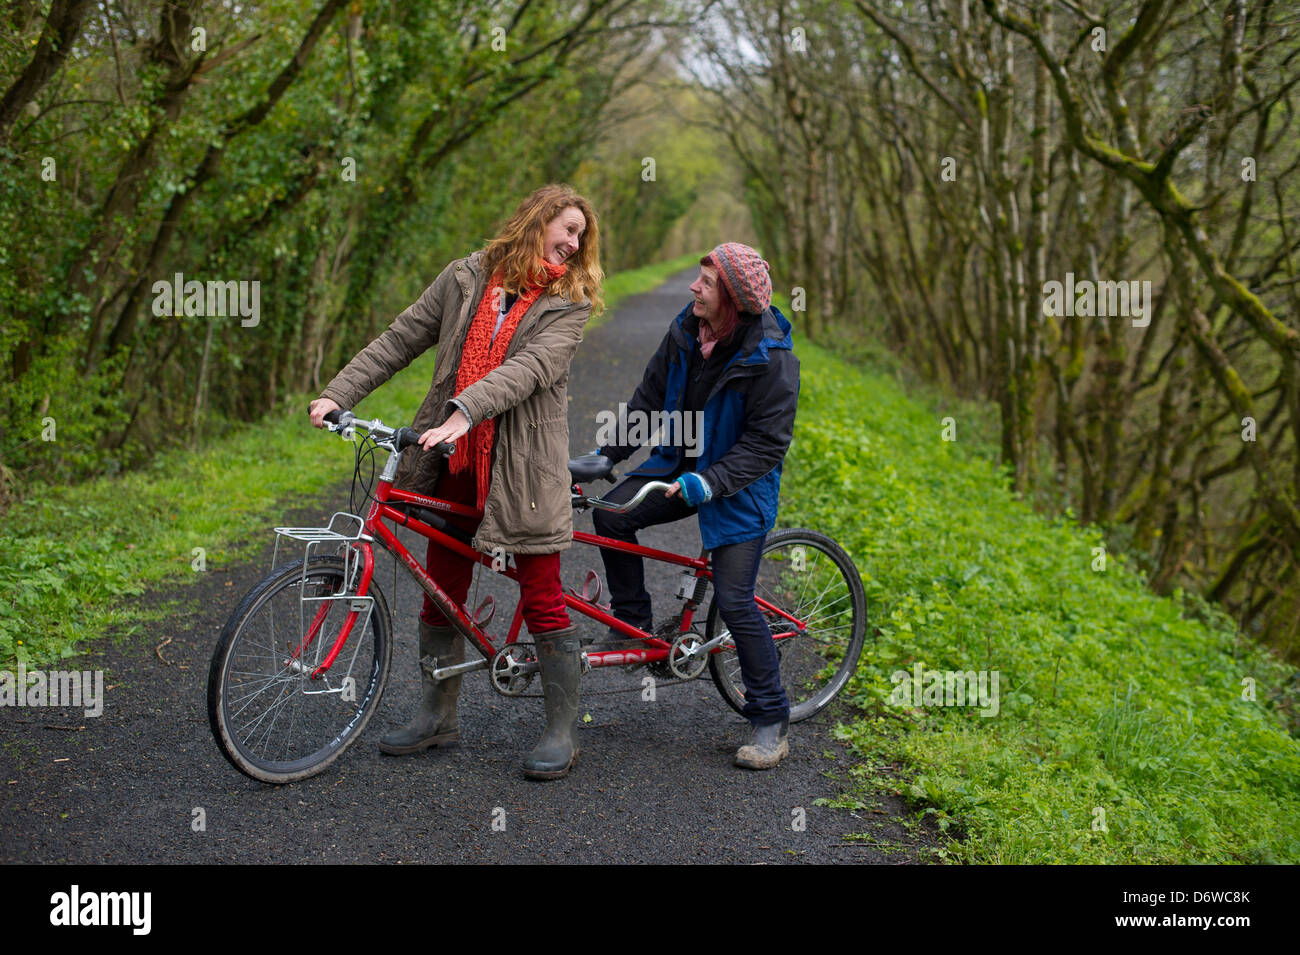 Two ladies on a tandem bicycle on part of the Tarka Trail, a cycle path in North Devon. - Stock Image